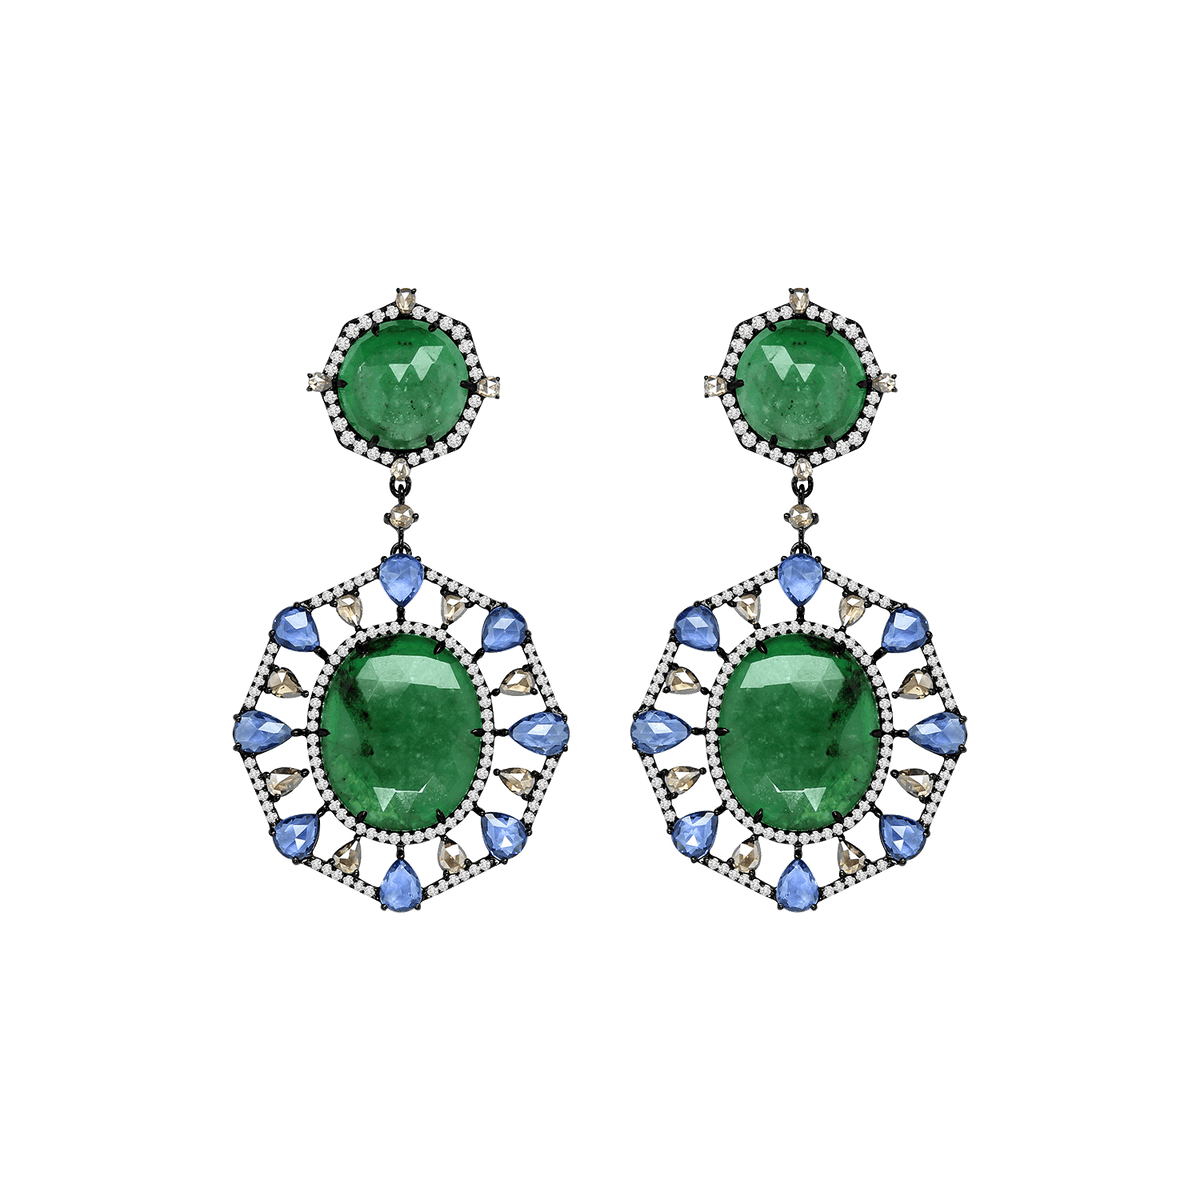 Emerald, Sapphire, and Diamond NWL Earrings